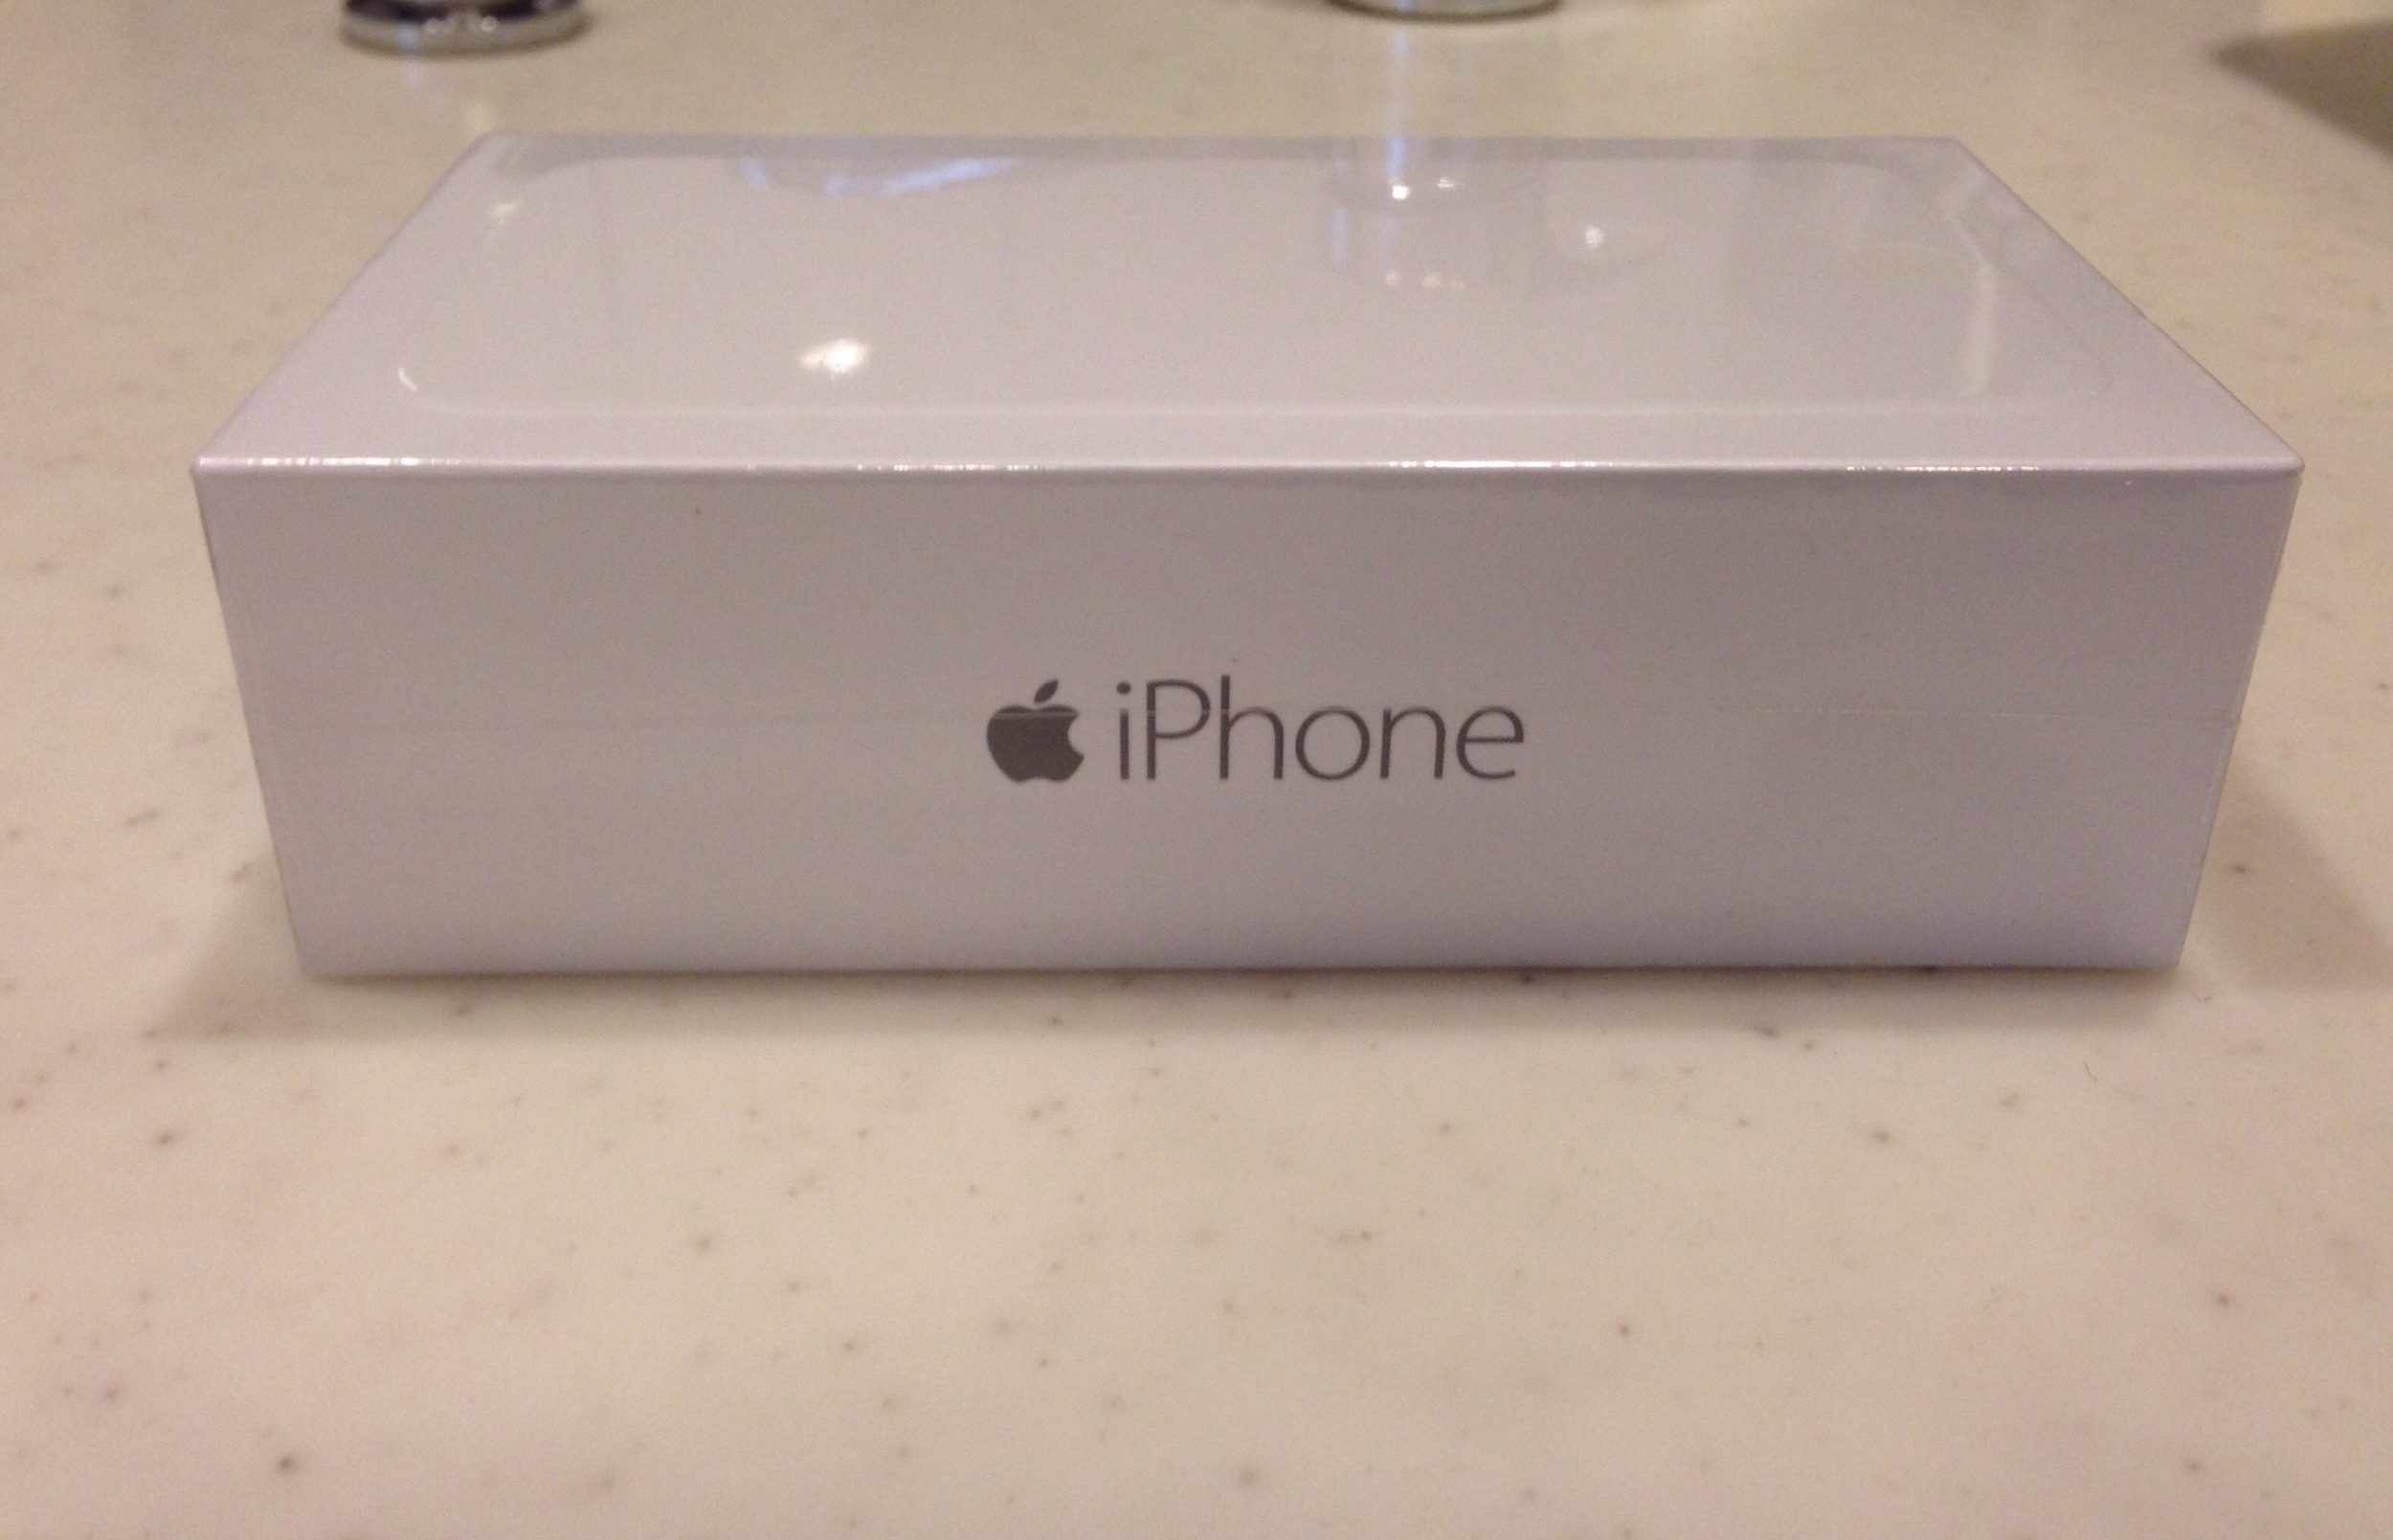 Pre-unboxed iPhone 6